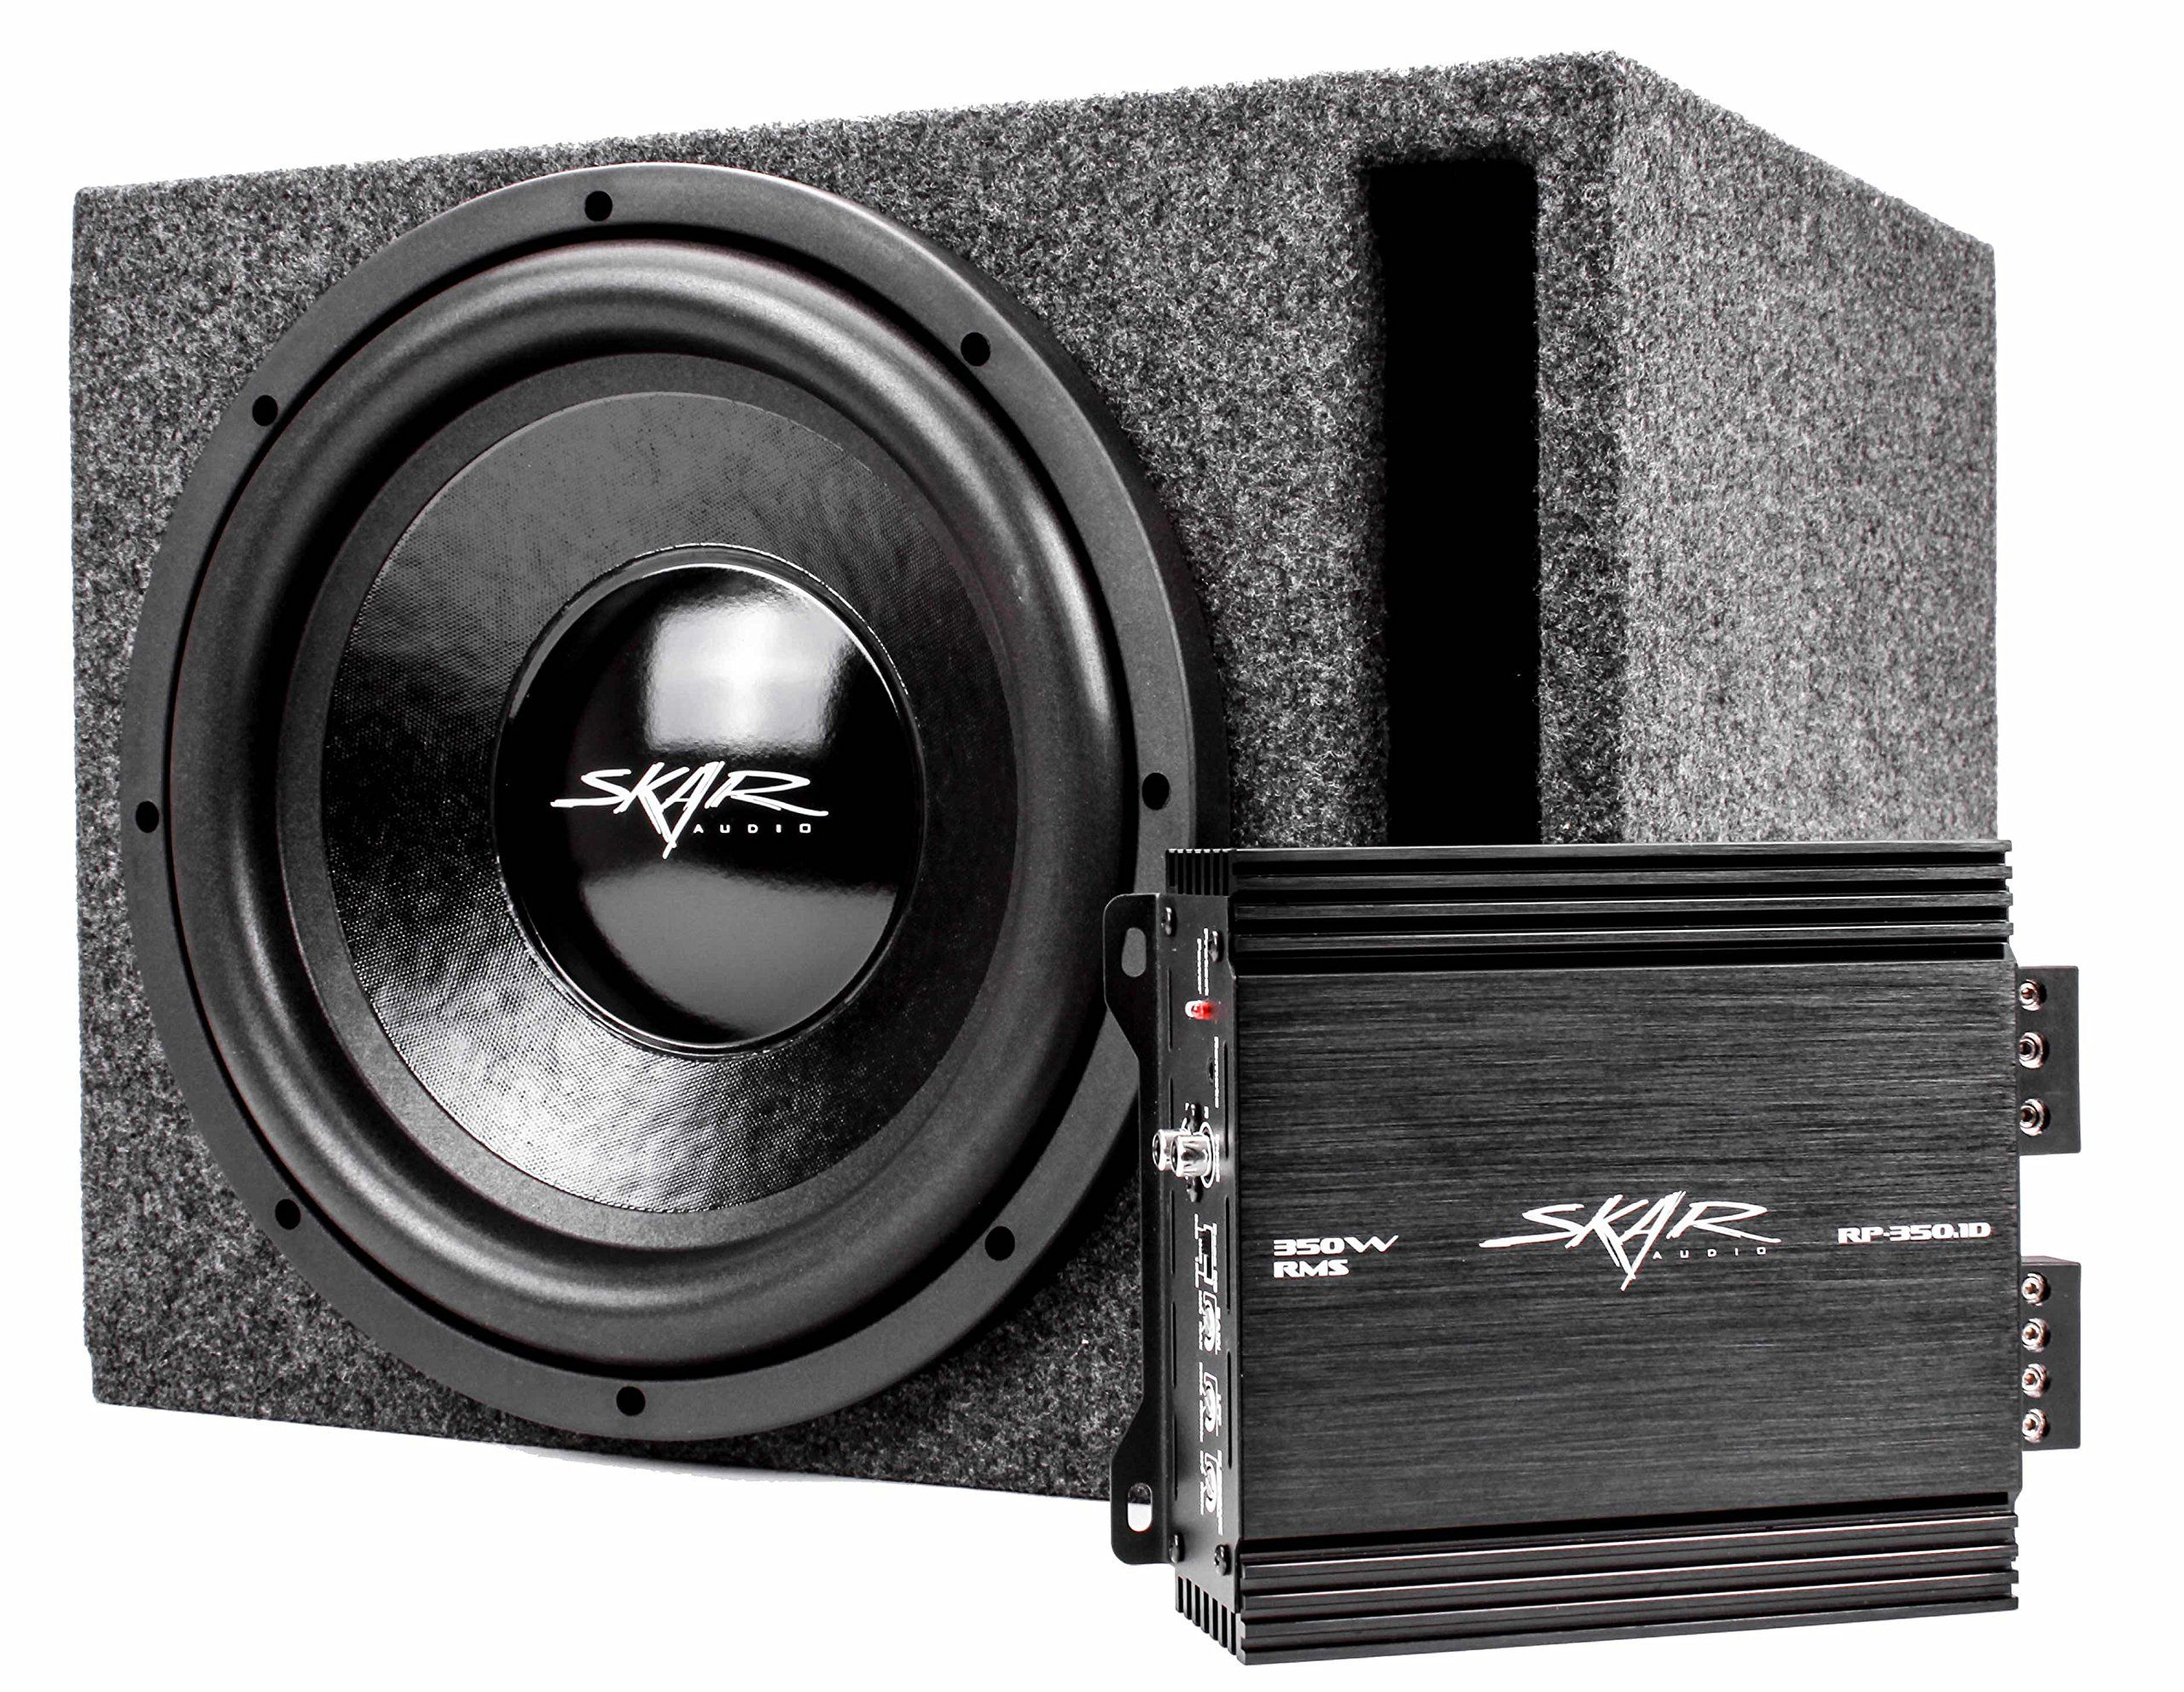 skar audio watt complete car subwoofer package inch skar audio 500 watt complete car subwoofer package subwoofer in ported box amplifier and wiring kit